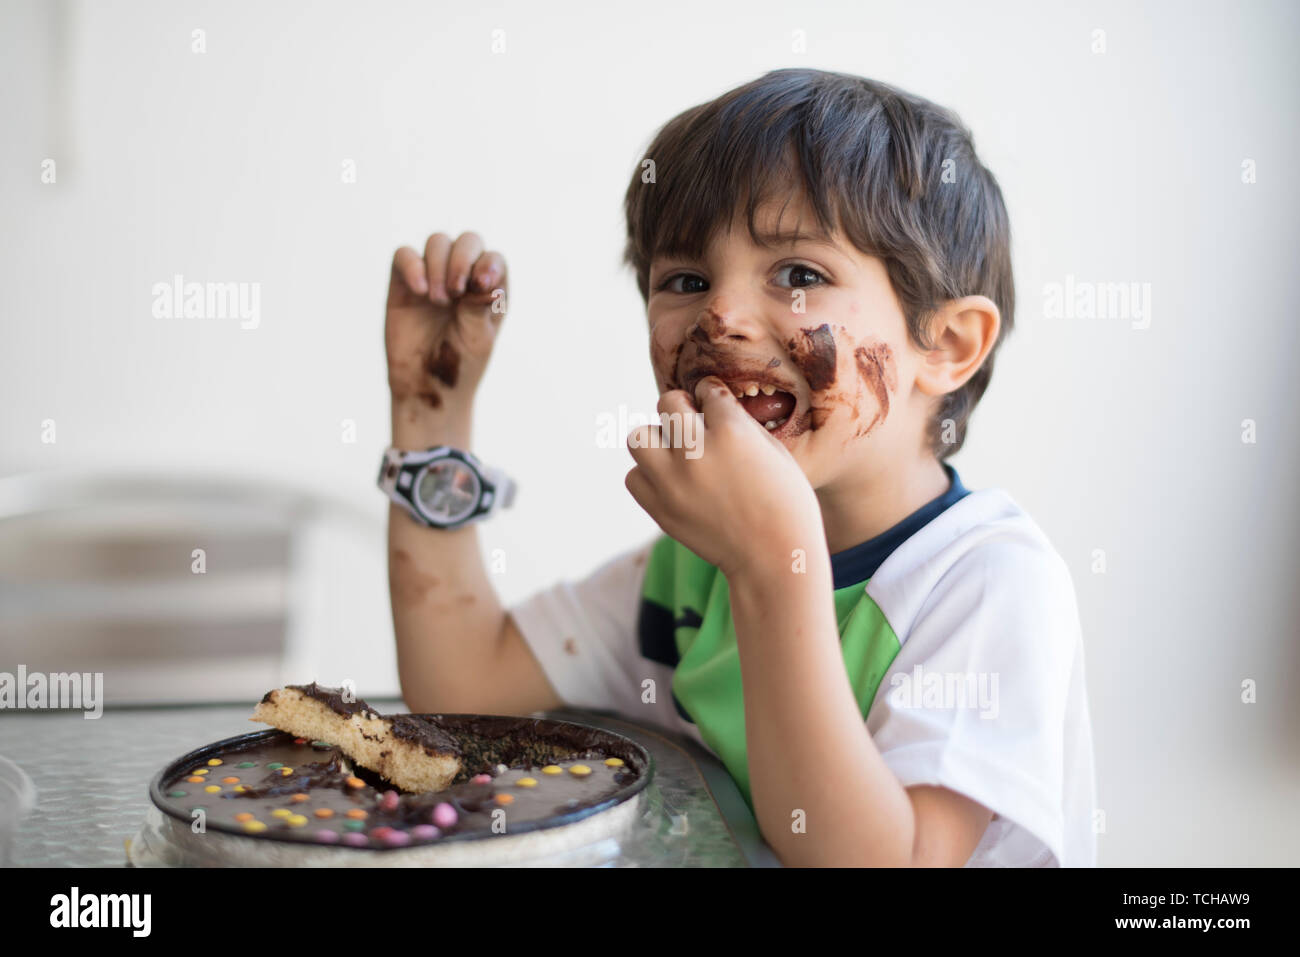 Dirty kid eating chocolate pie - Stock Image